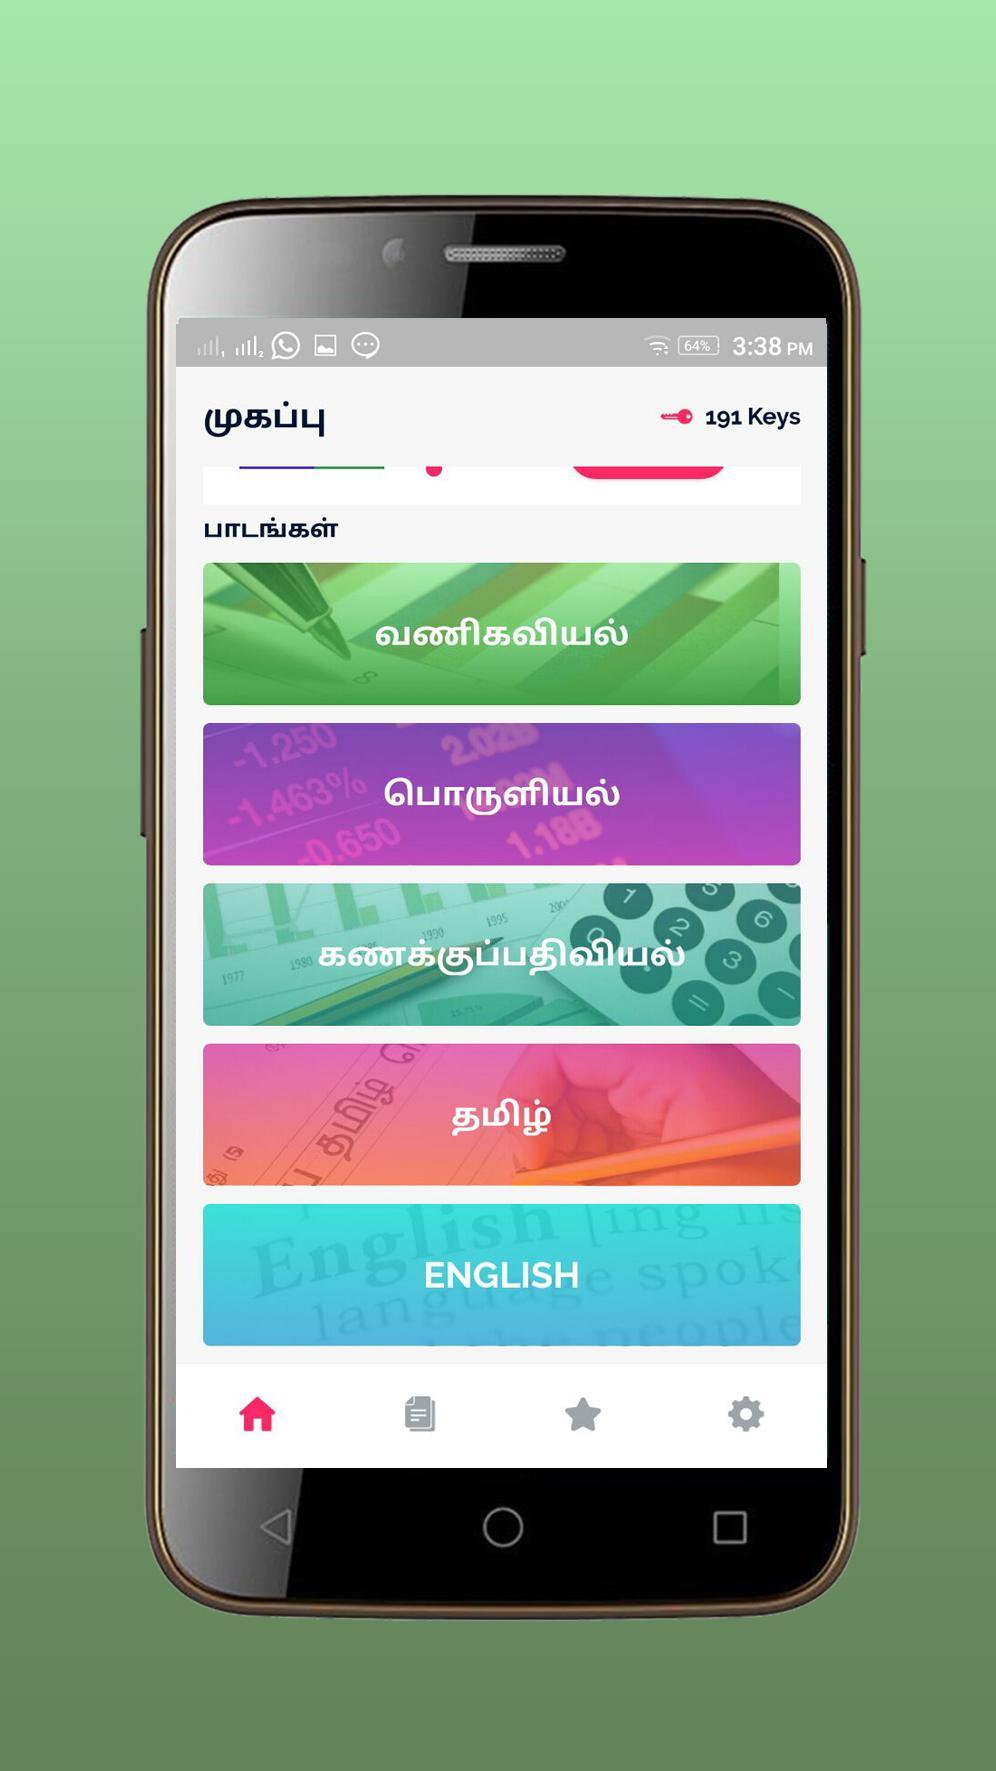 11th Std All Subjects for Android - APK Download